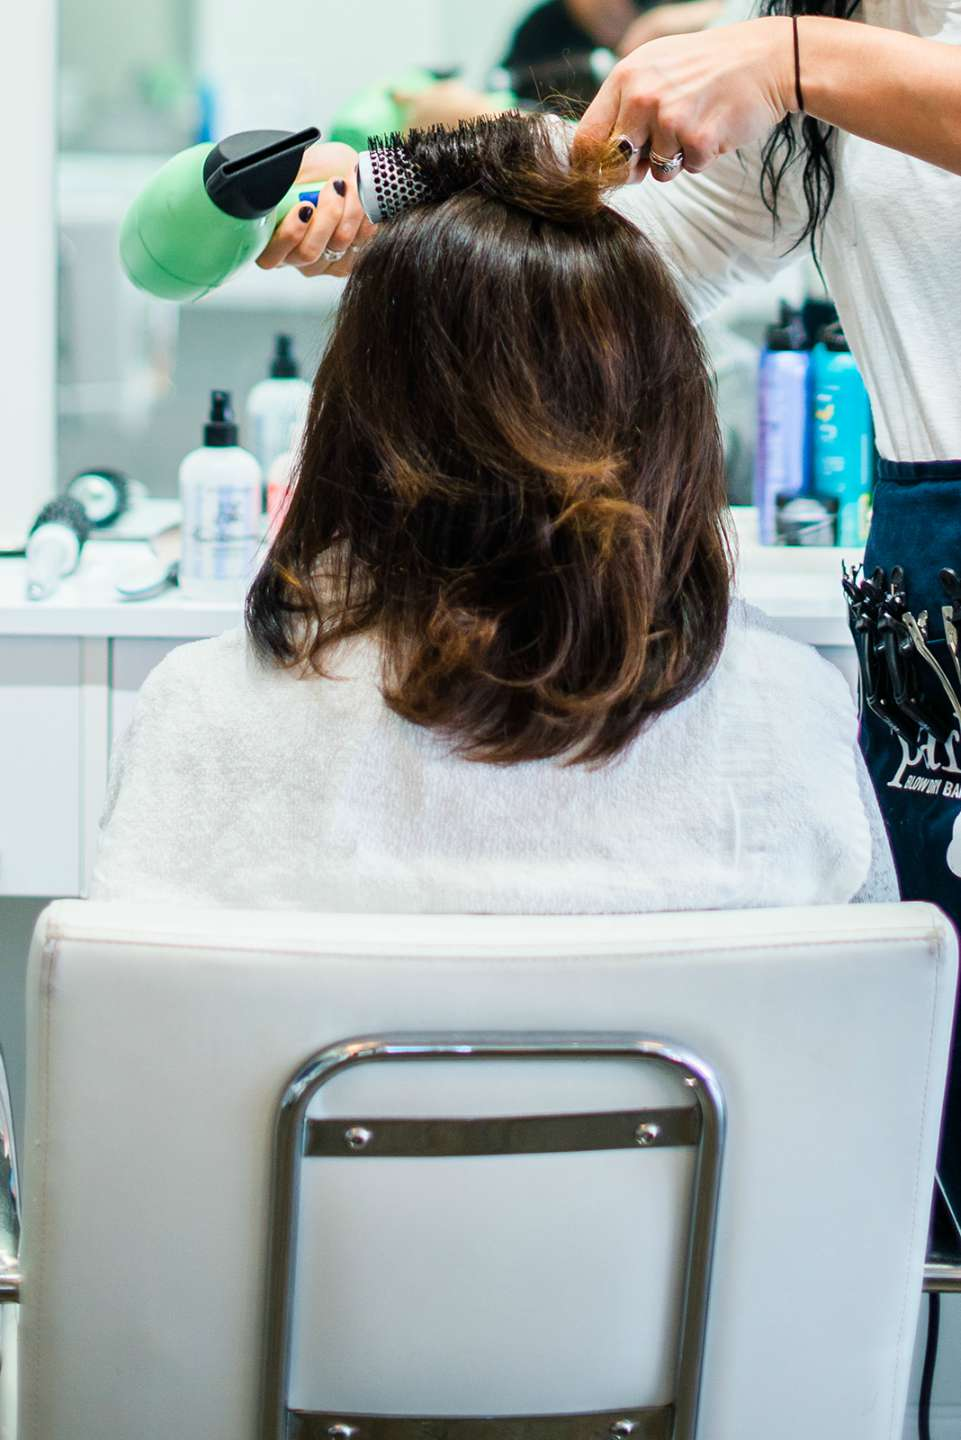 The Ultimate Girls' Day Out in Raleigh - I'm Fixin' To - @imfixintoblog| Girls Day Out In Raleigh by popular NC lifestyle blog, I'm Fixin' To: image of a woman sitting in a white leather chair and getting her hair blow dried.